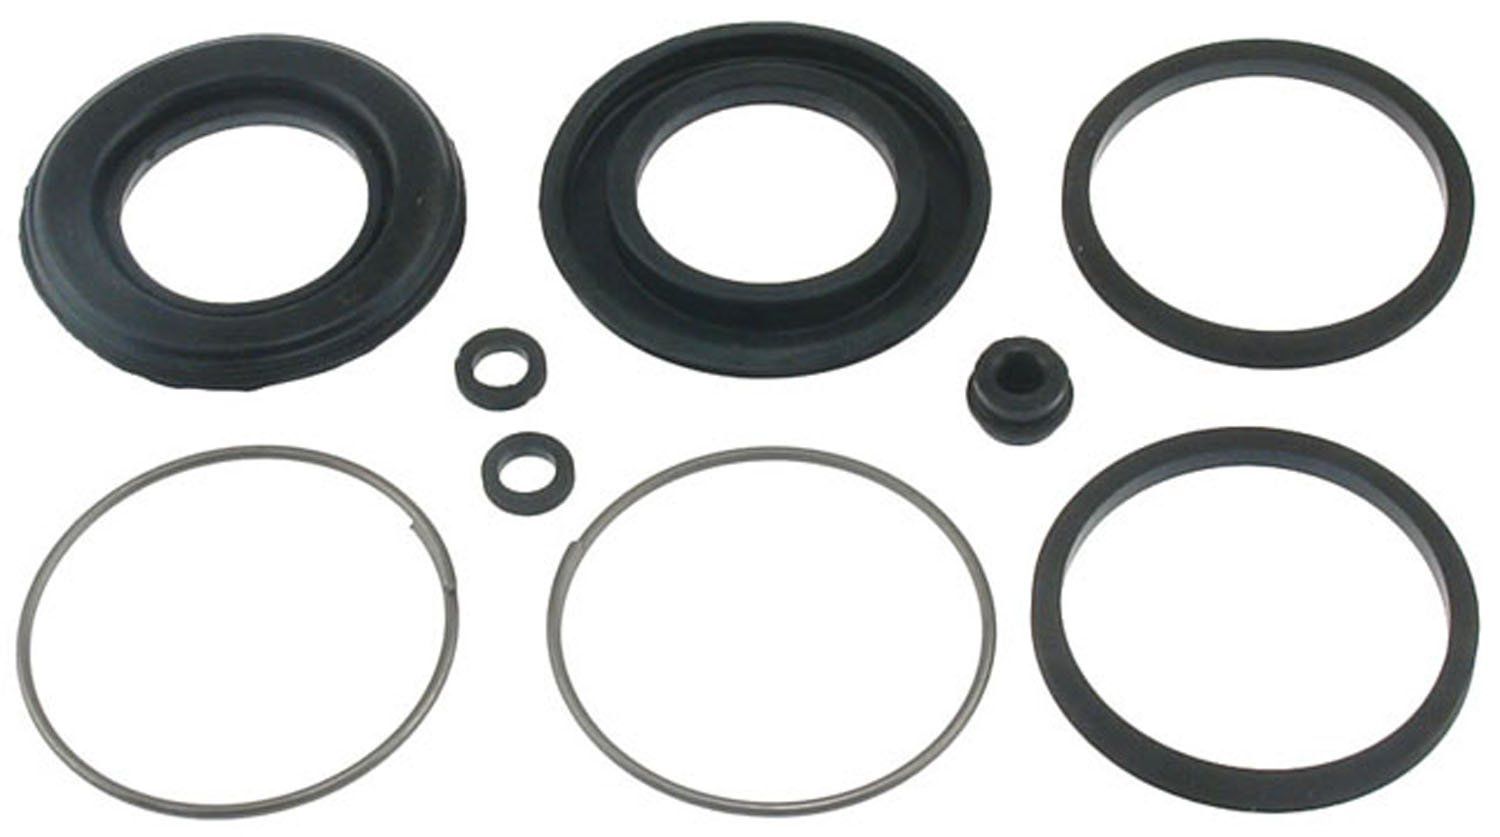 ACDelco 18H59 Professional Rear Disc Brake Caliper Boot and Seal Kit with Boots, Seals, Washers, and Cap